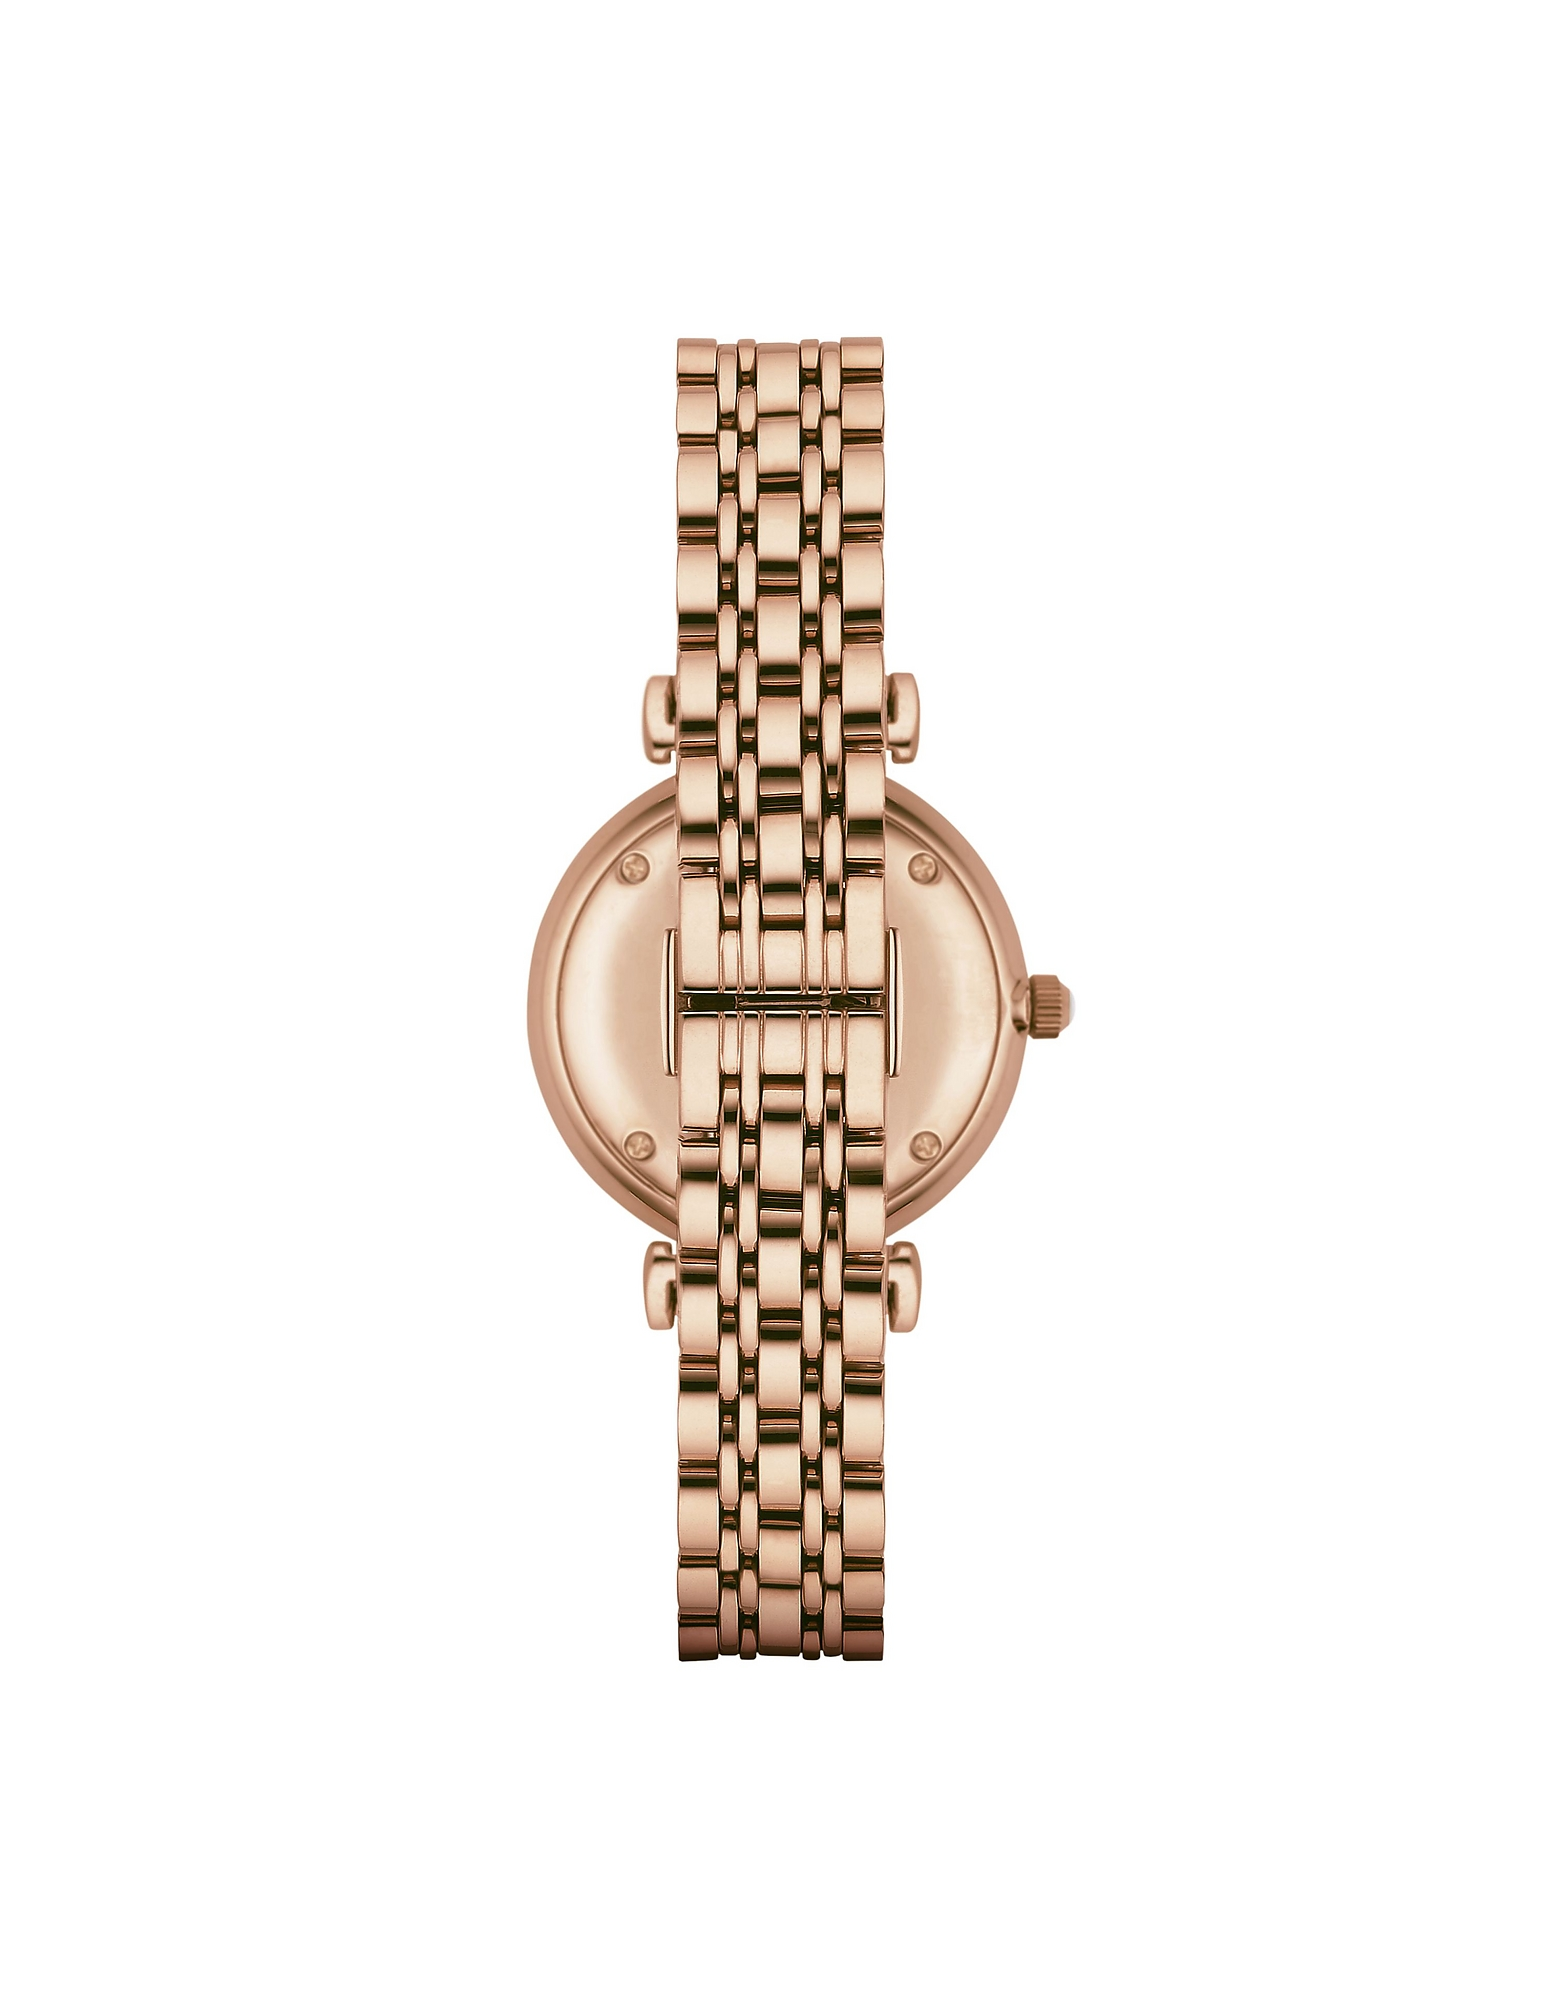 Emporio Armani Women's Watches, Rose Gold PVD Stainless Steel Women's Quartz Watch w/Mother of Pearl